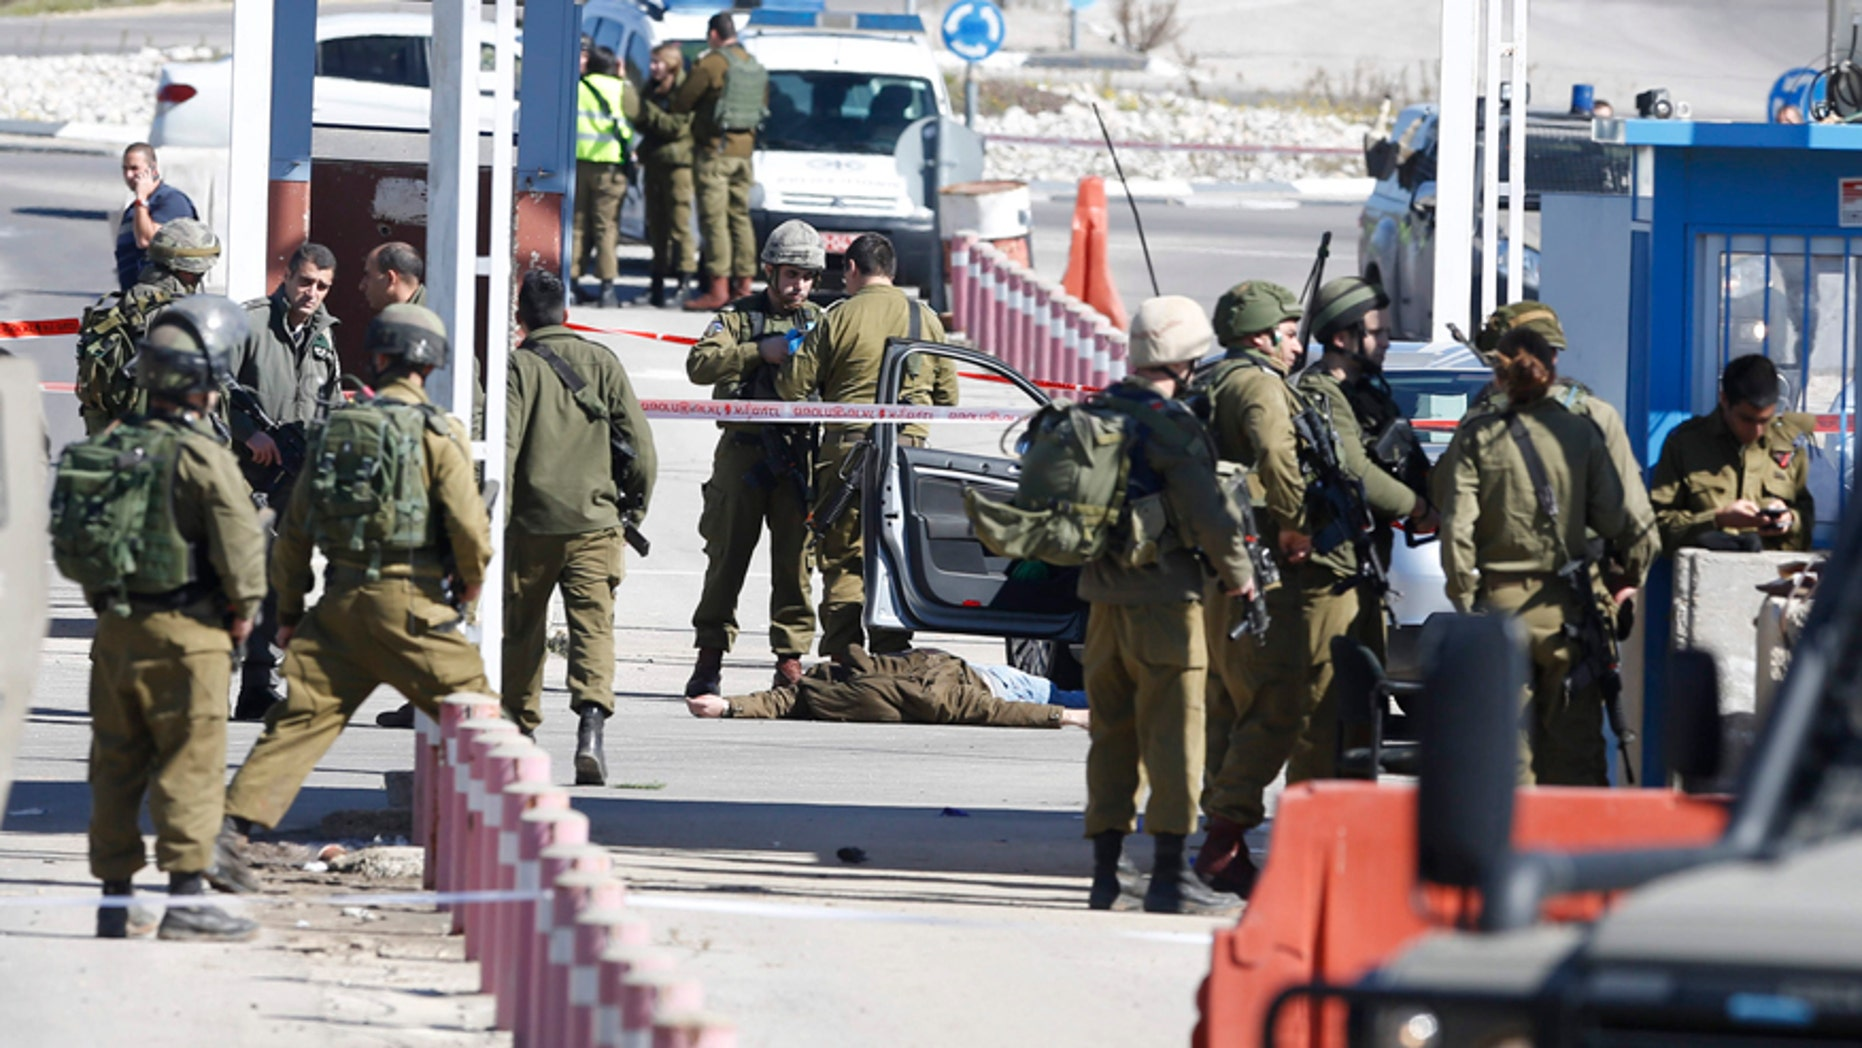 Jan. 31, 2016: Israeli security forces inspect the body of a Palestinian identified as Amjad Sukkari, inside a car, at the checkpoint between the city of Ramallah and Jewish settlement of Beit El in the West Bank.